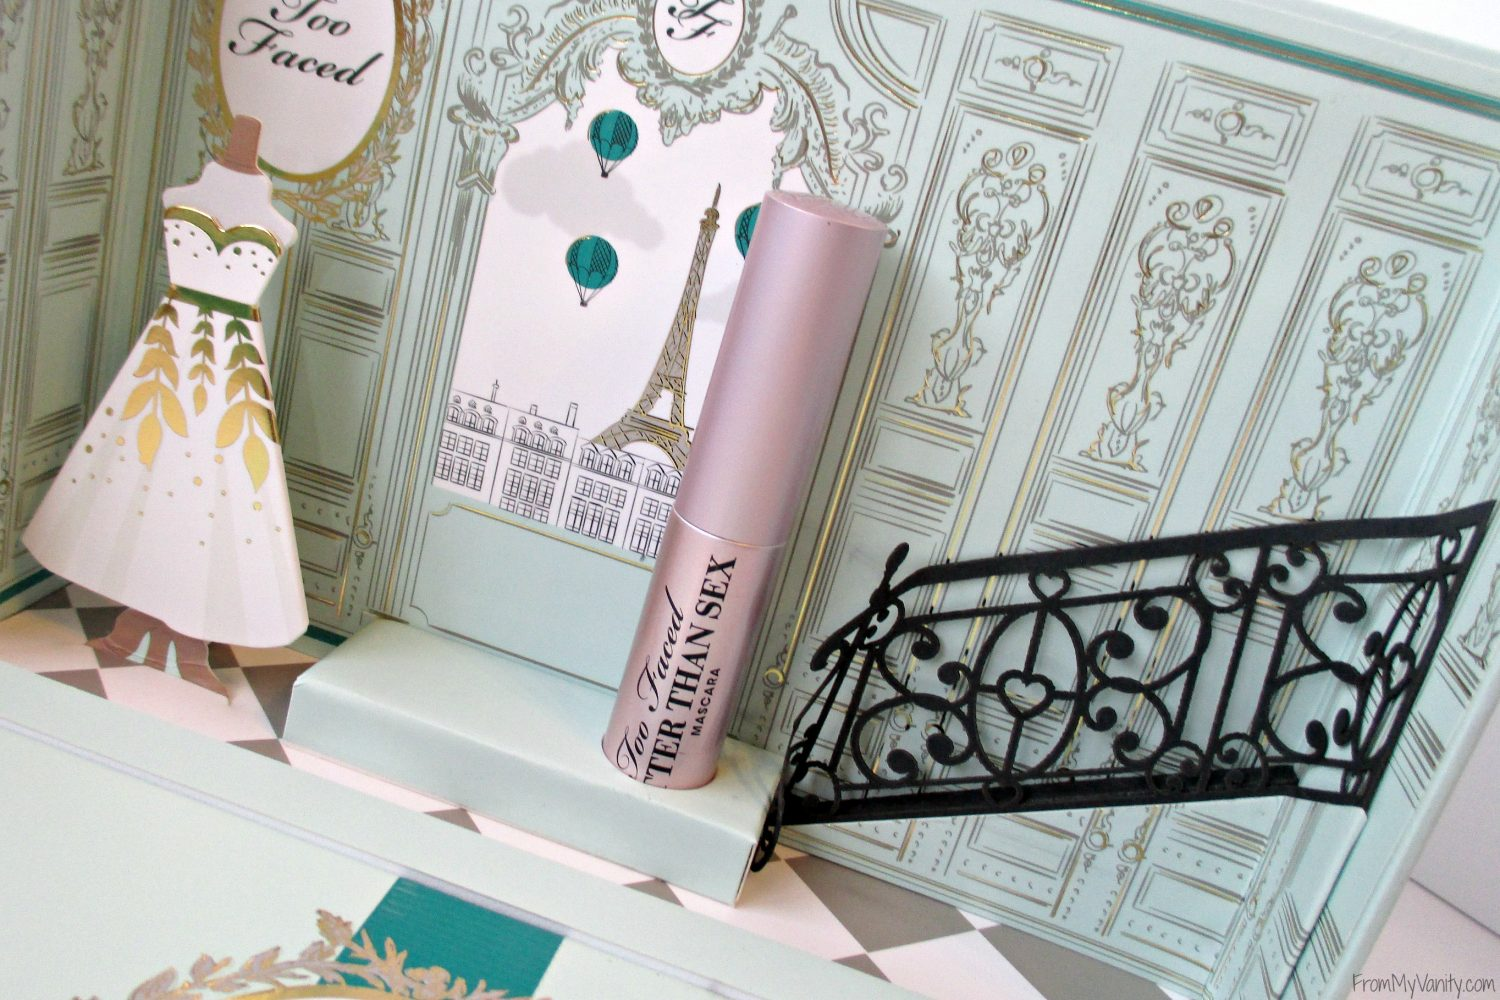 Too Faced La Petite Maison // Holiday Set // Review & Swatches // Close Up Mini #BetterThanSex Mascara #UltaBeauty #TooFaced FromMyVanity.com